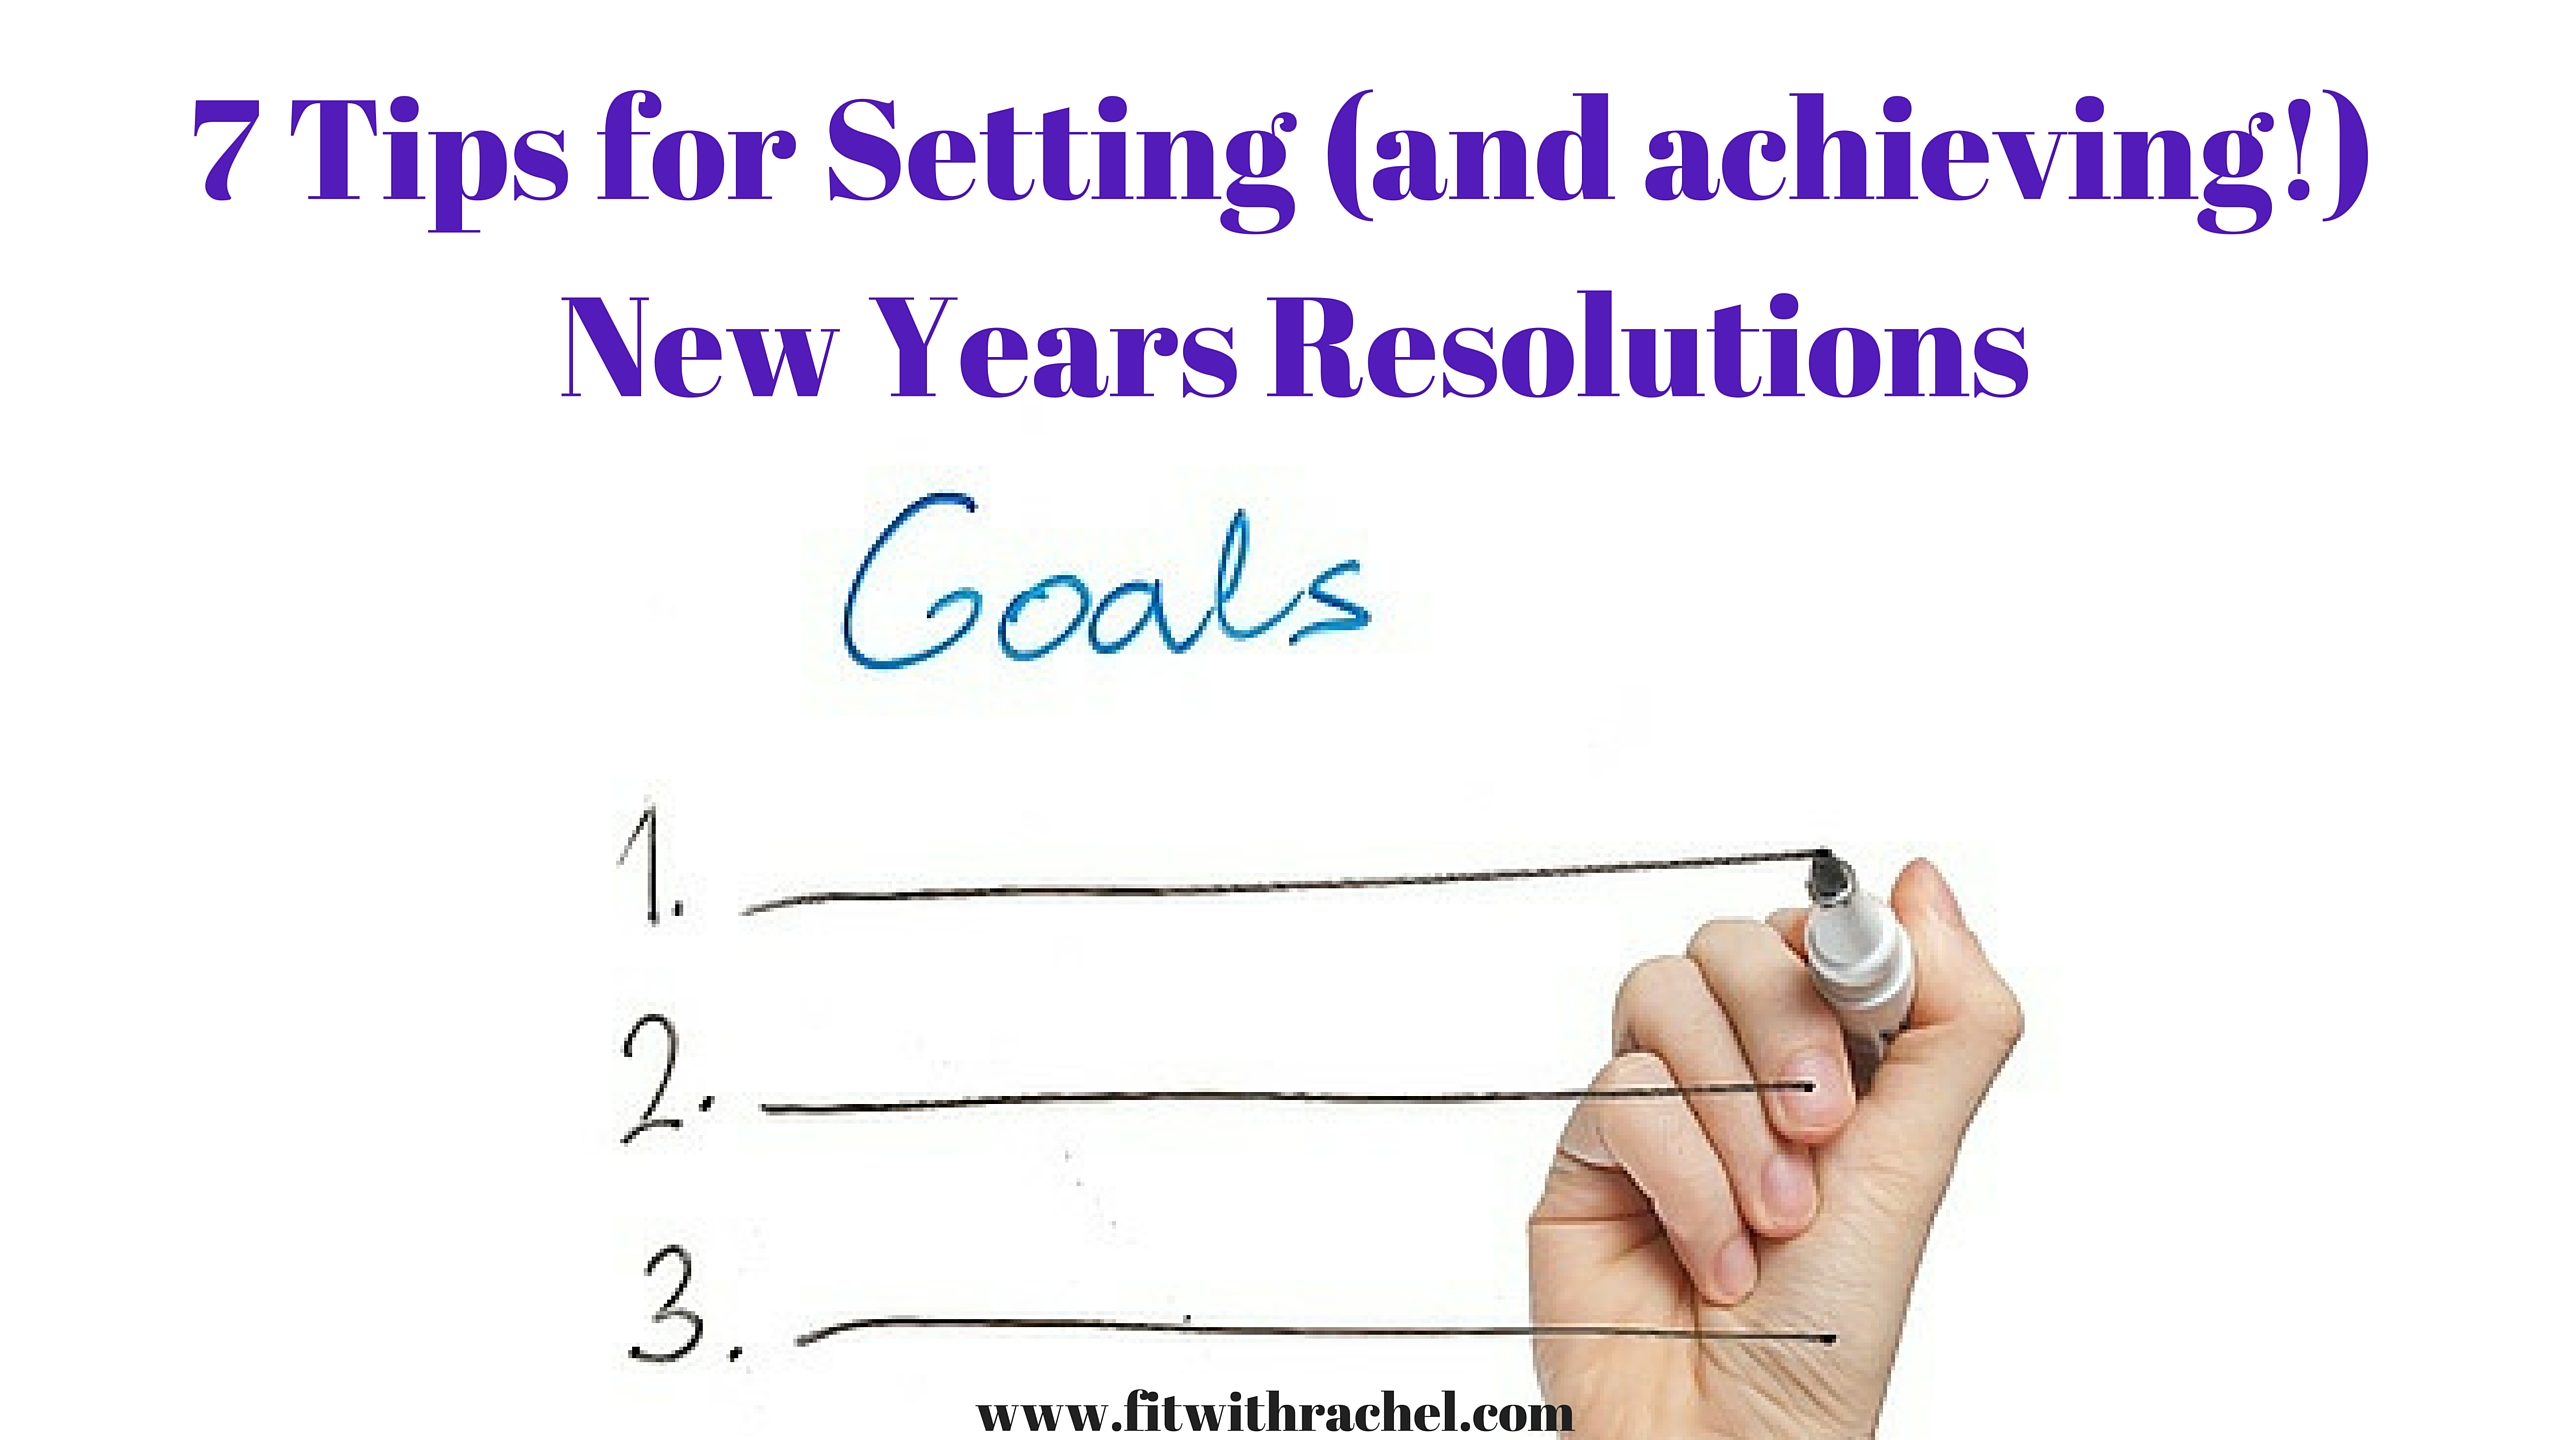 7 Tips for Setting (and achieving!) New Years Resolutions